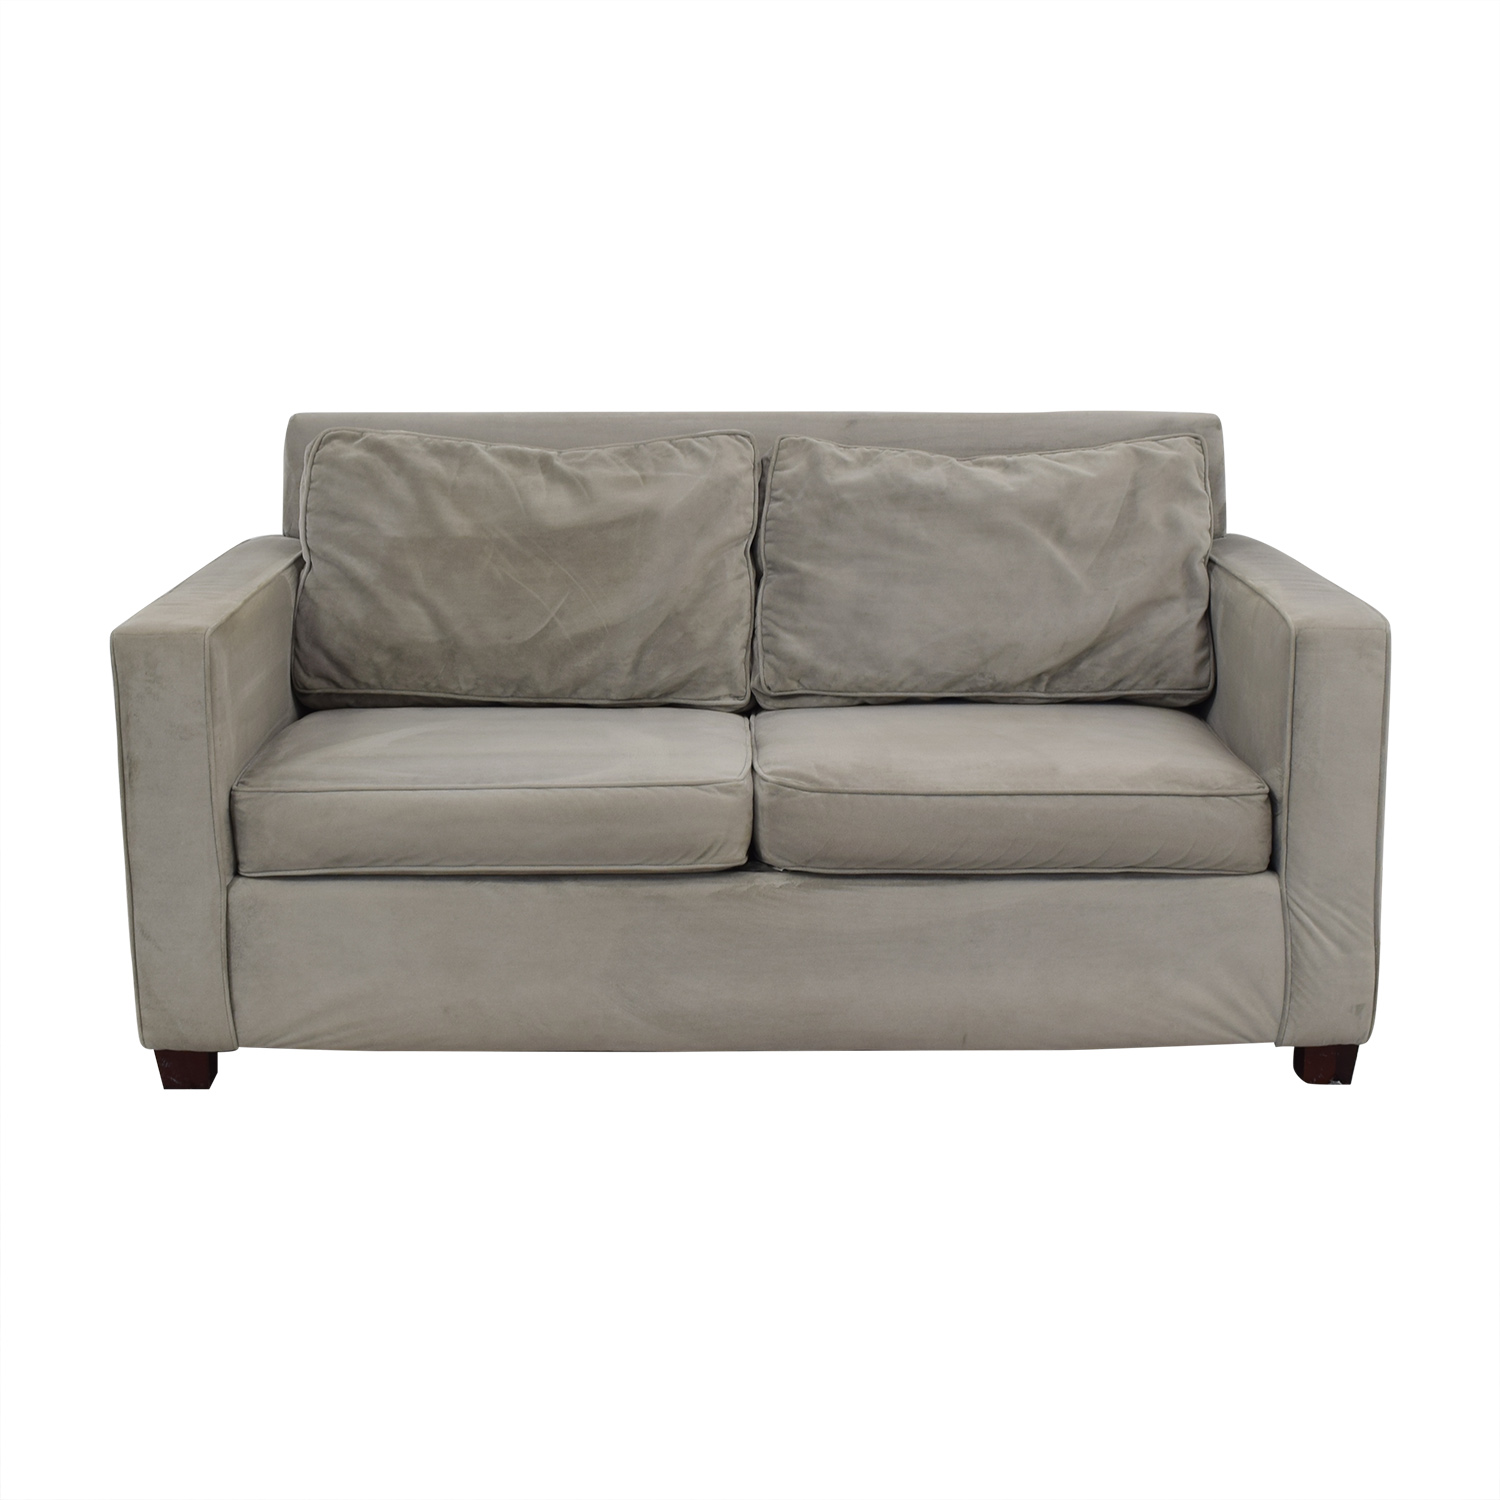 Cool 78 Off West Elm West Elm Henry Loveseat Sofas Caraccident5 Cool Chair Designs And Ideas Caraccident5Info